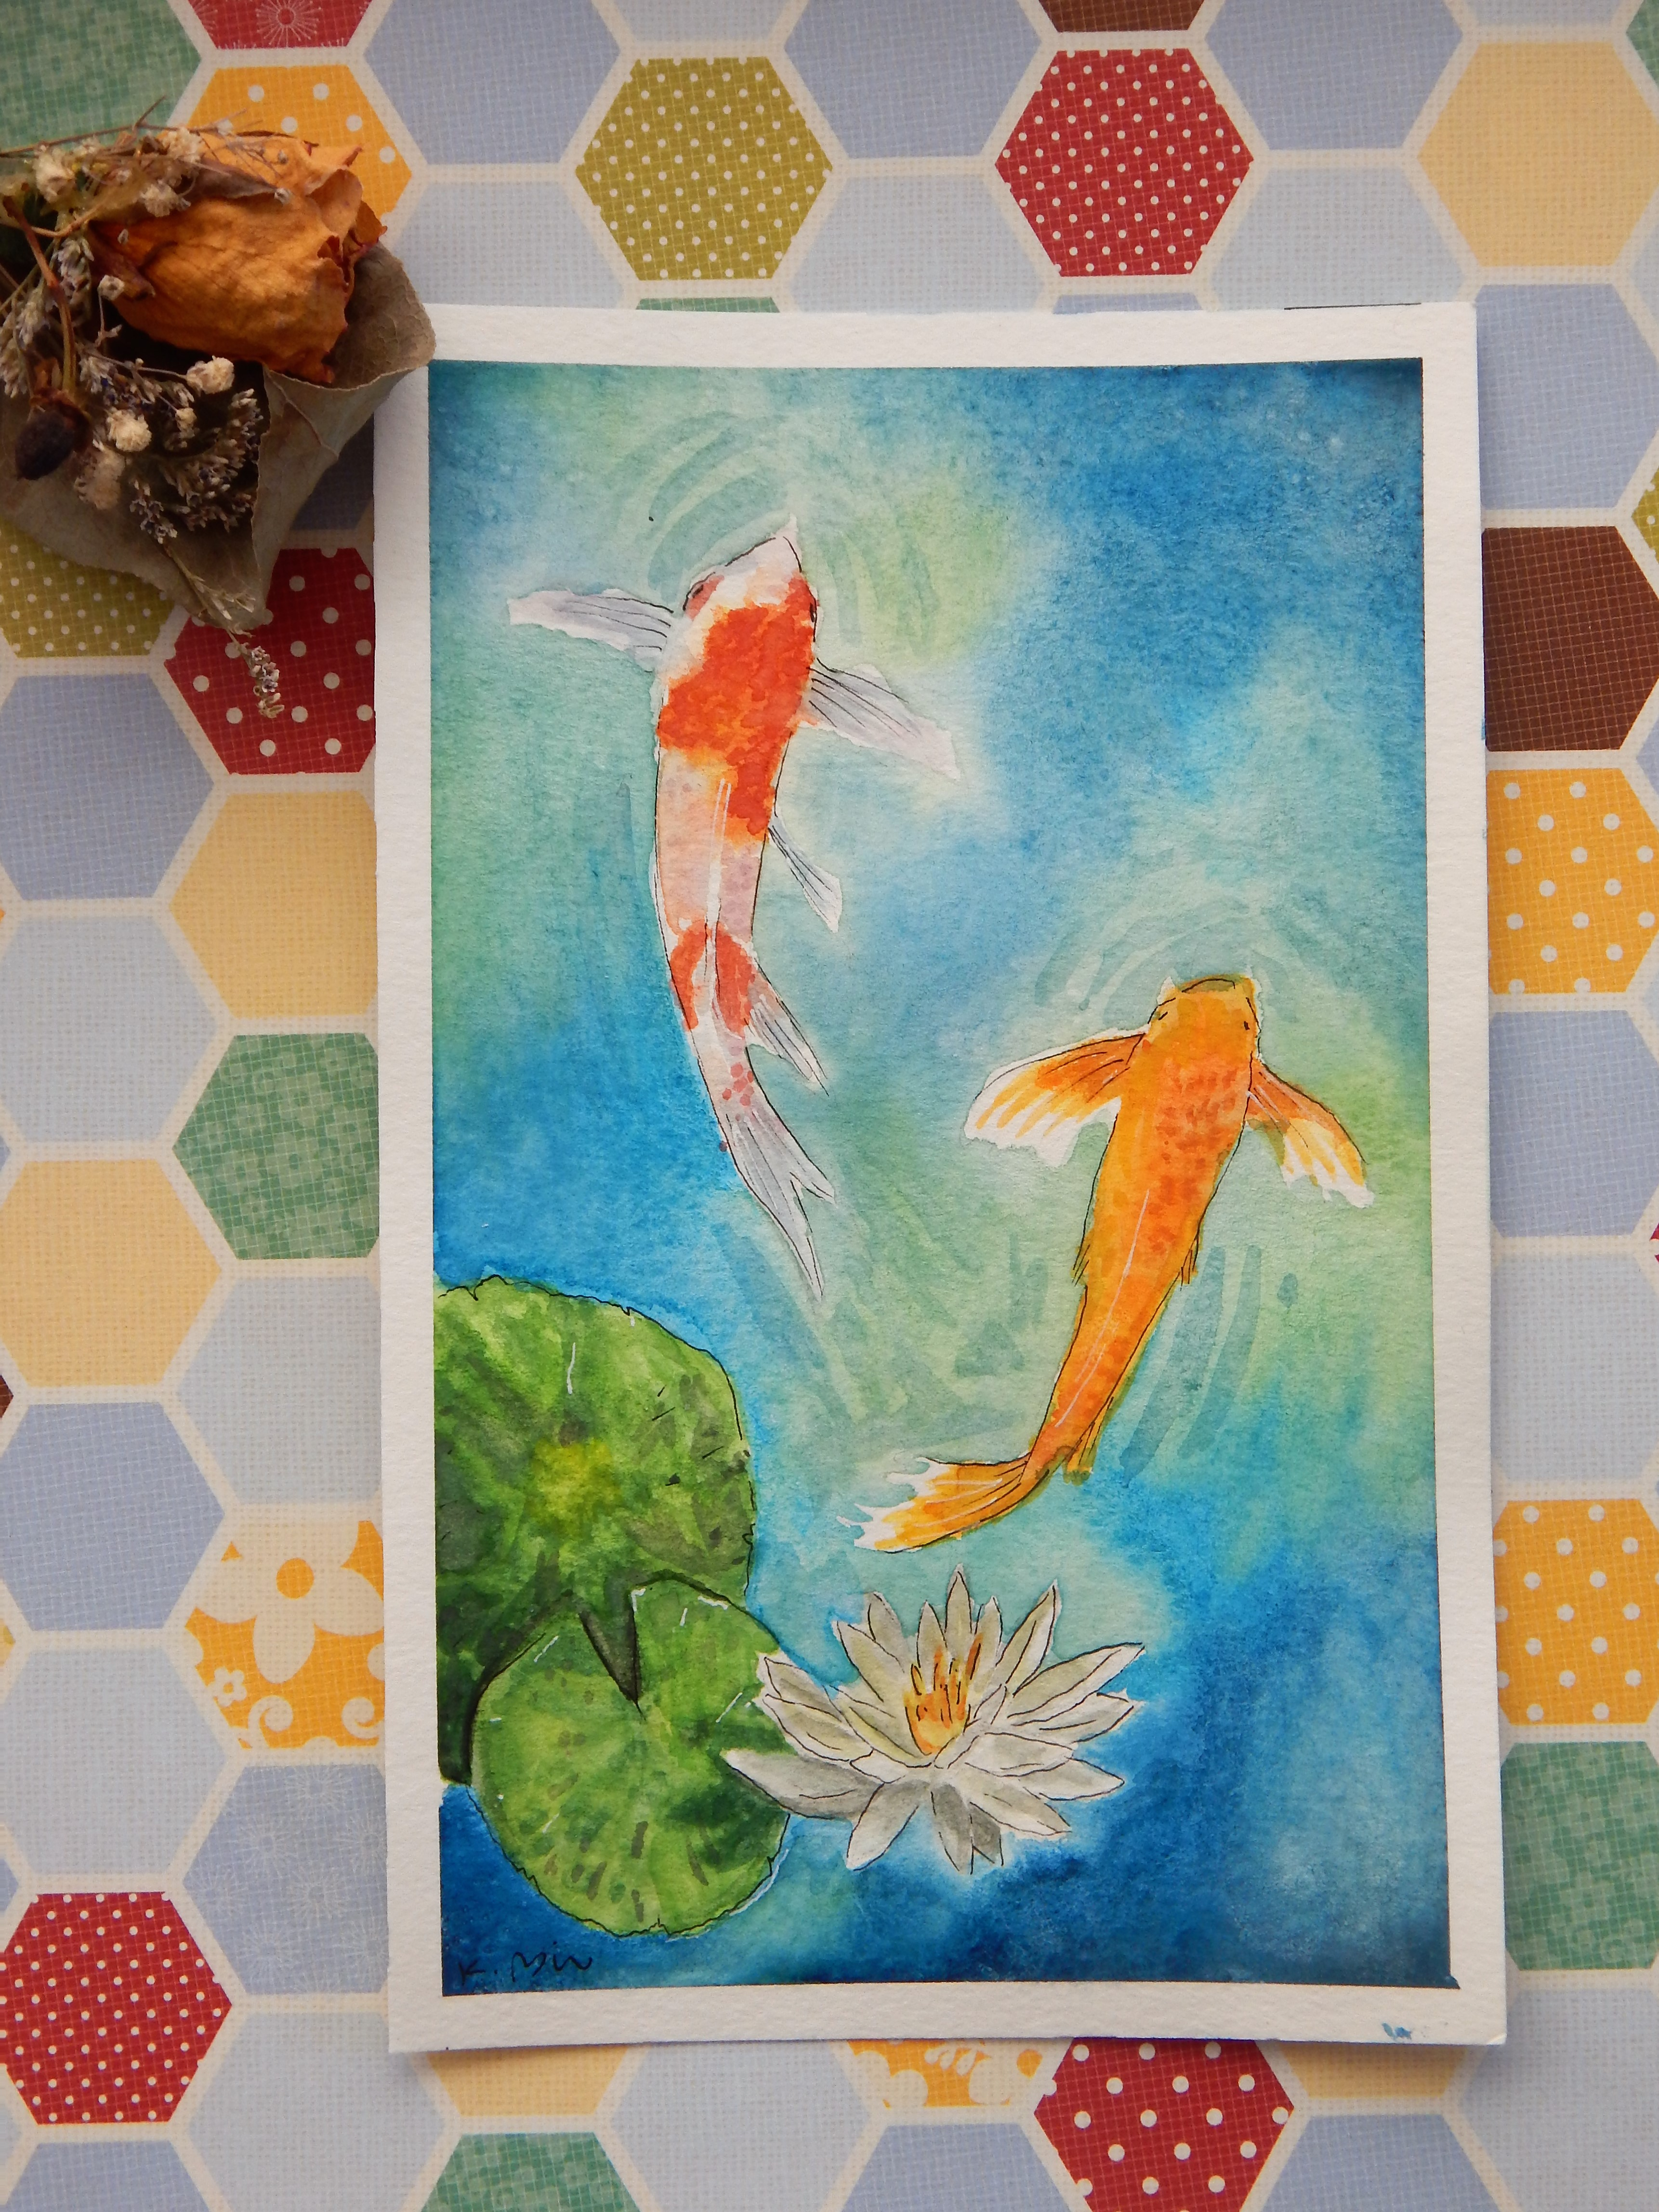 Watercolor Koi Fish Painting Sold By Kayterpae Art On Storenvy